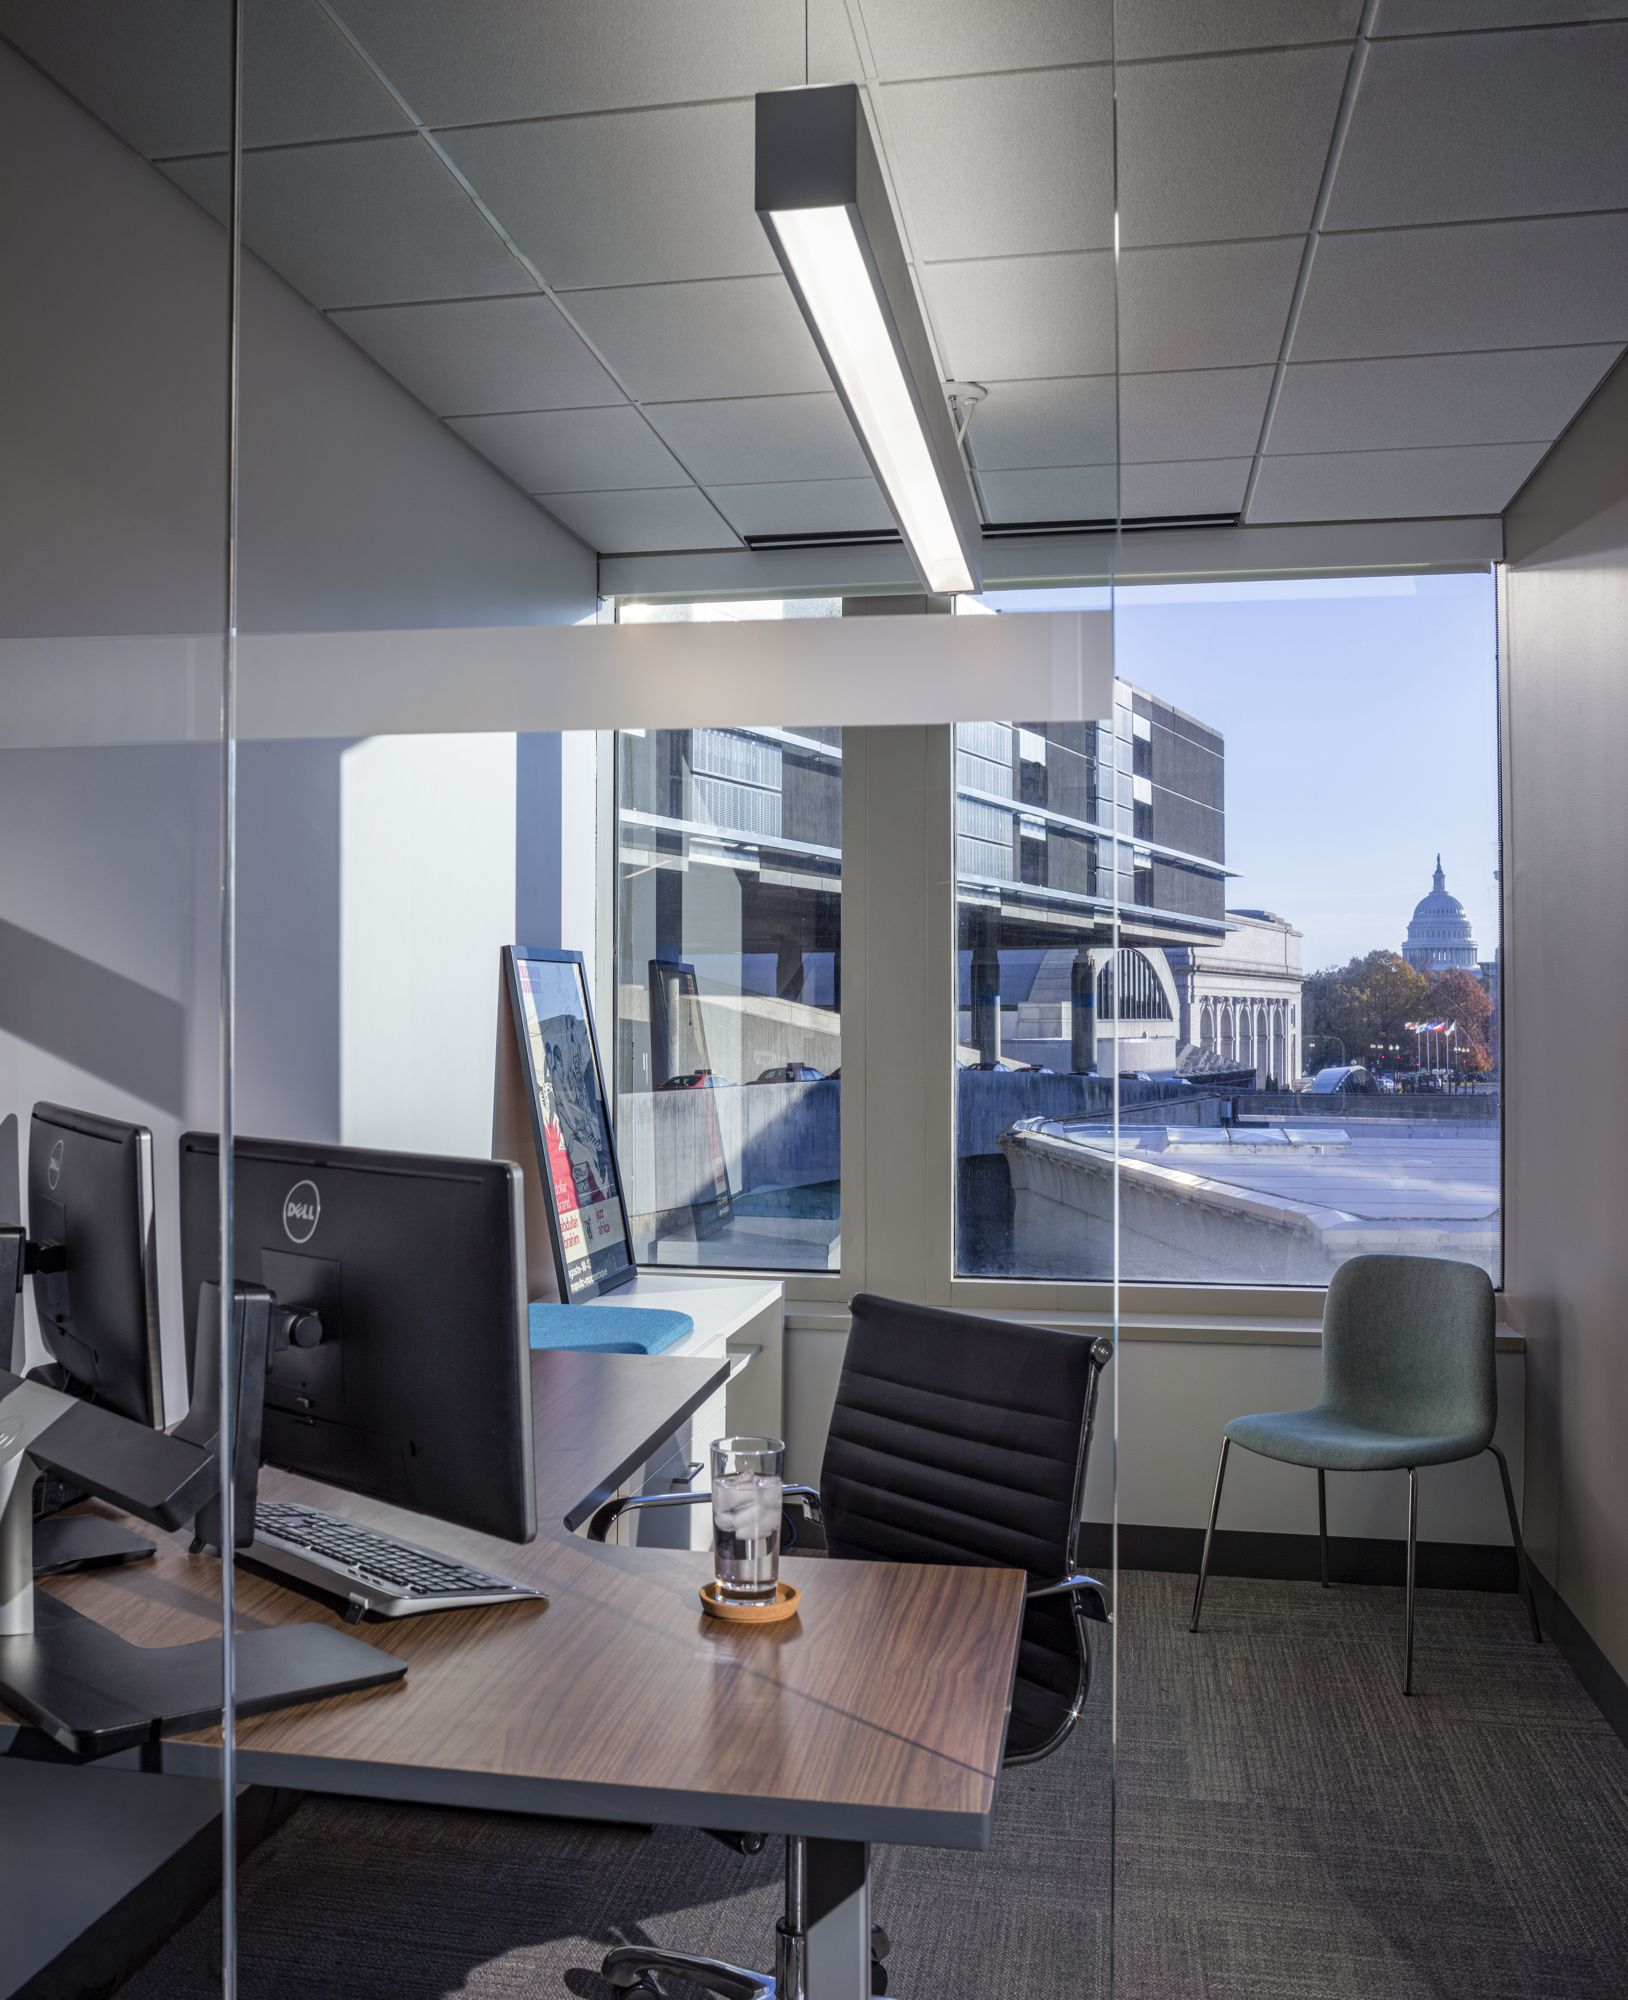 The offices have full glass fronts to allow maximum access to natural light, but offer unique Capitol views.